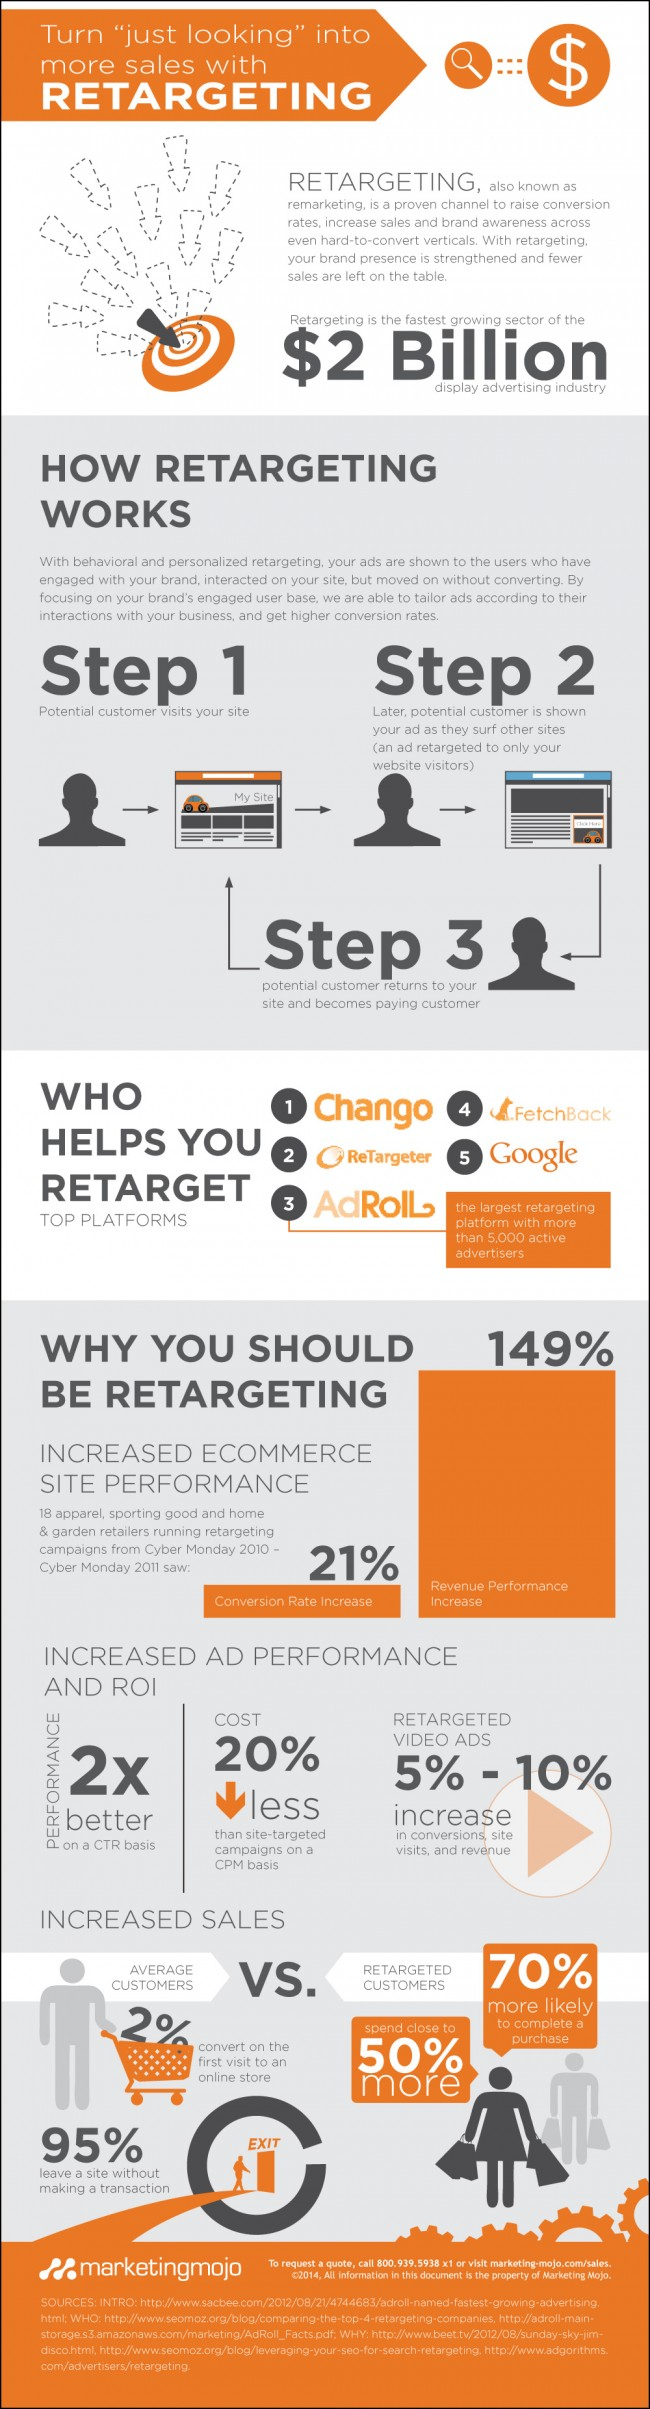 Can Retargeting Help Your Business